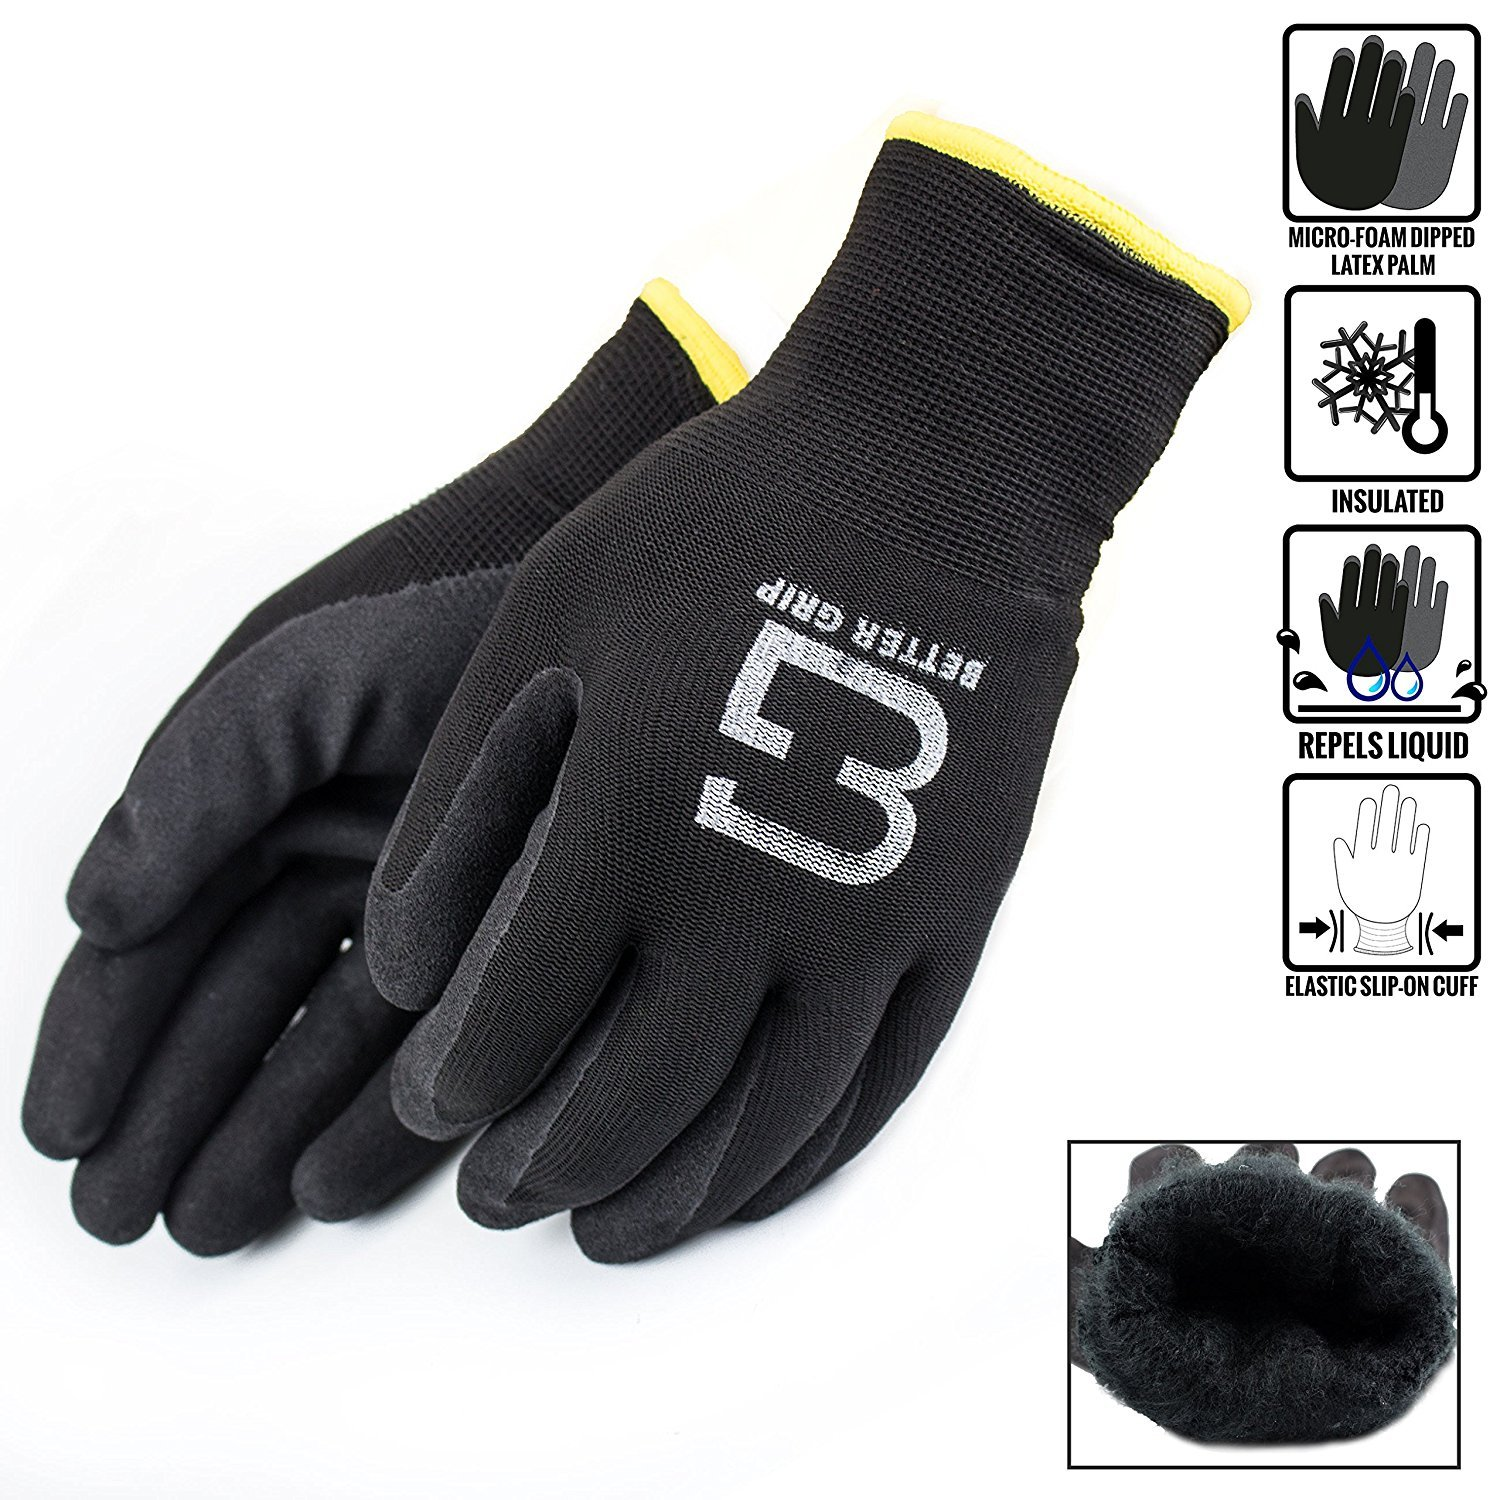 Better Grip Insulated Winter Double Lining Rubber Coated Safety Work Gloves | 3 Pairs/Pack BGWANS (Large, Black)